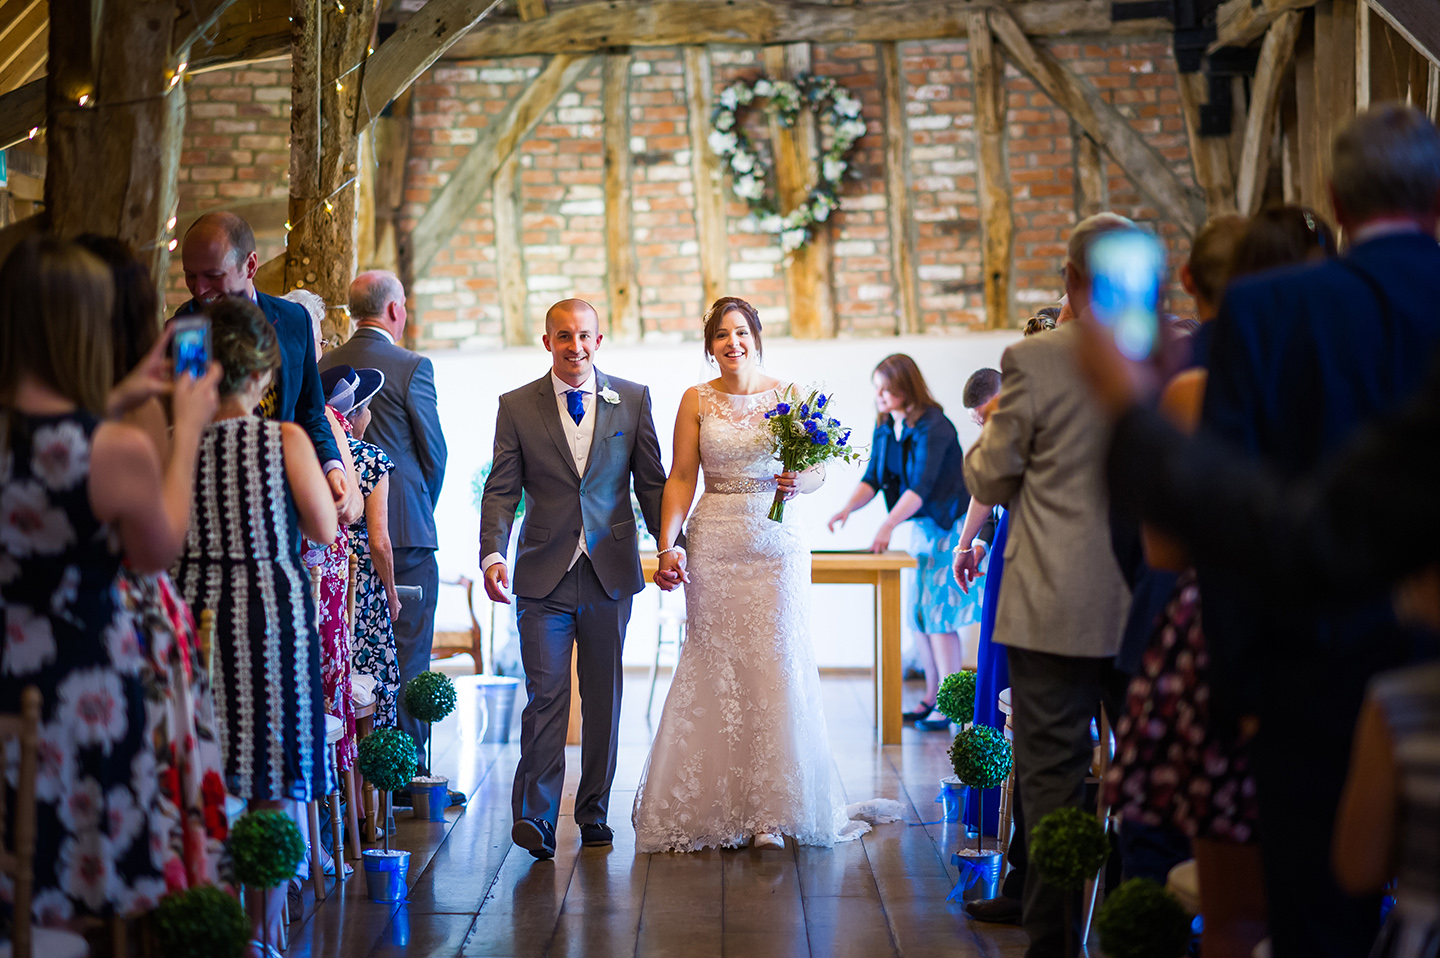 The bride and groom exchanged wedding vows in the beautiful Rickety Barn wedding ceremony barn